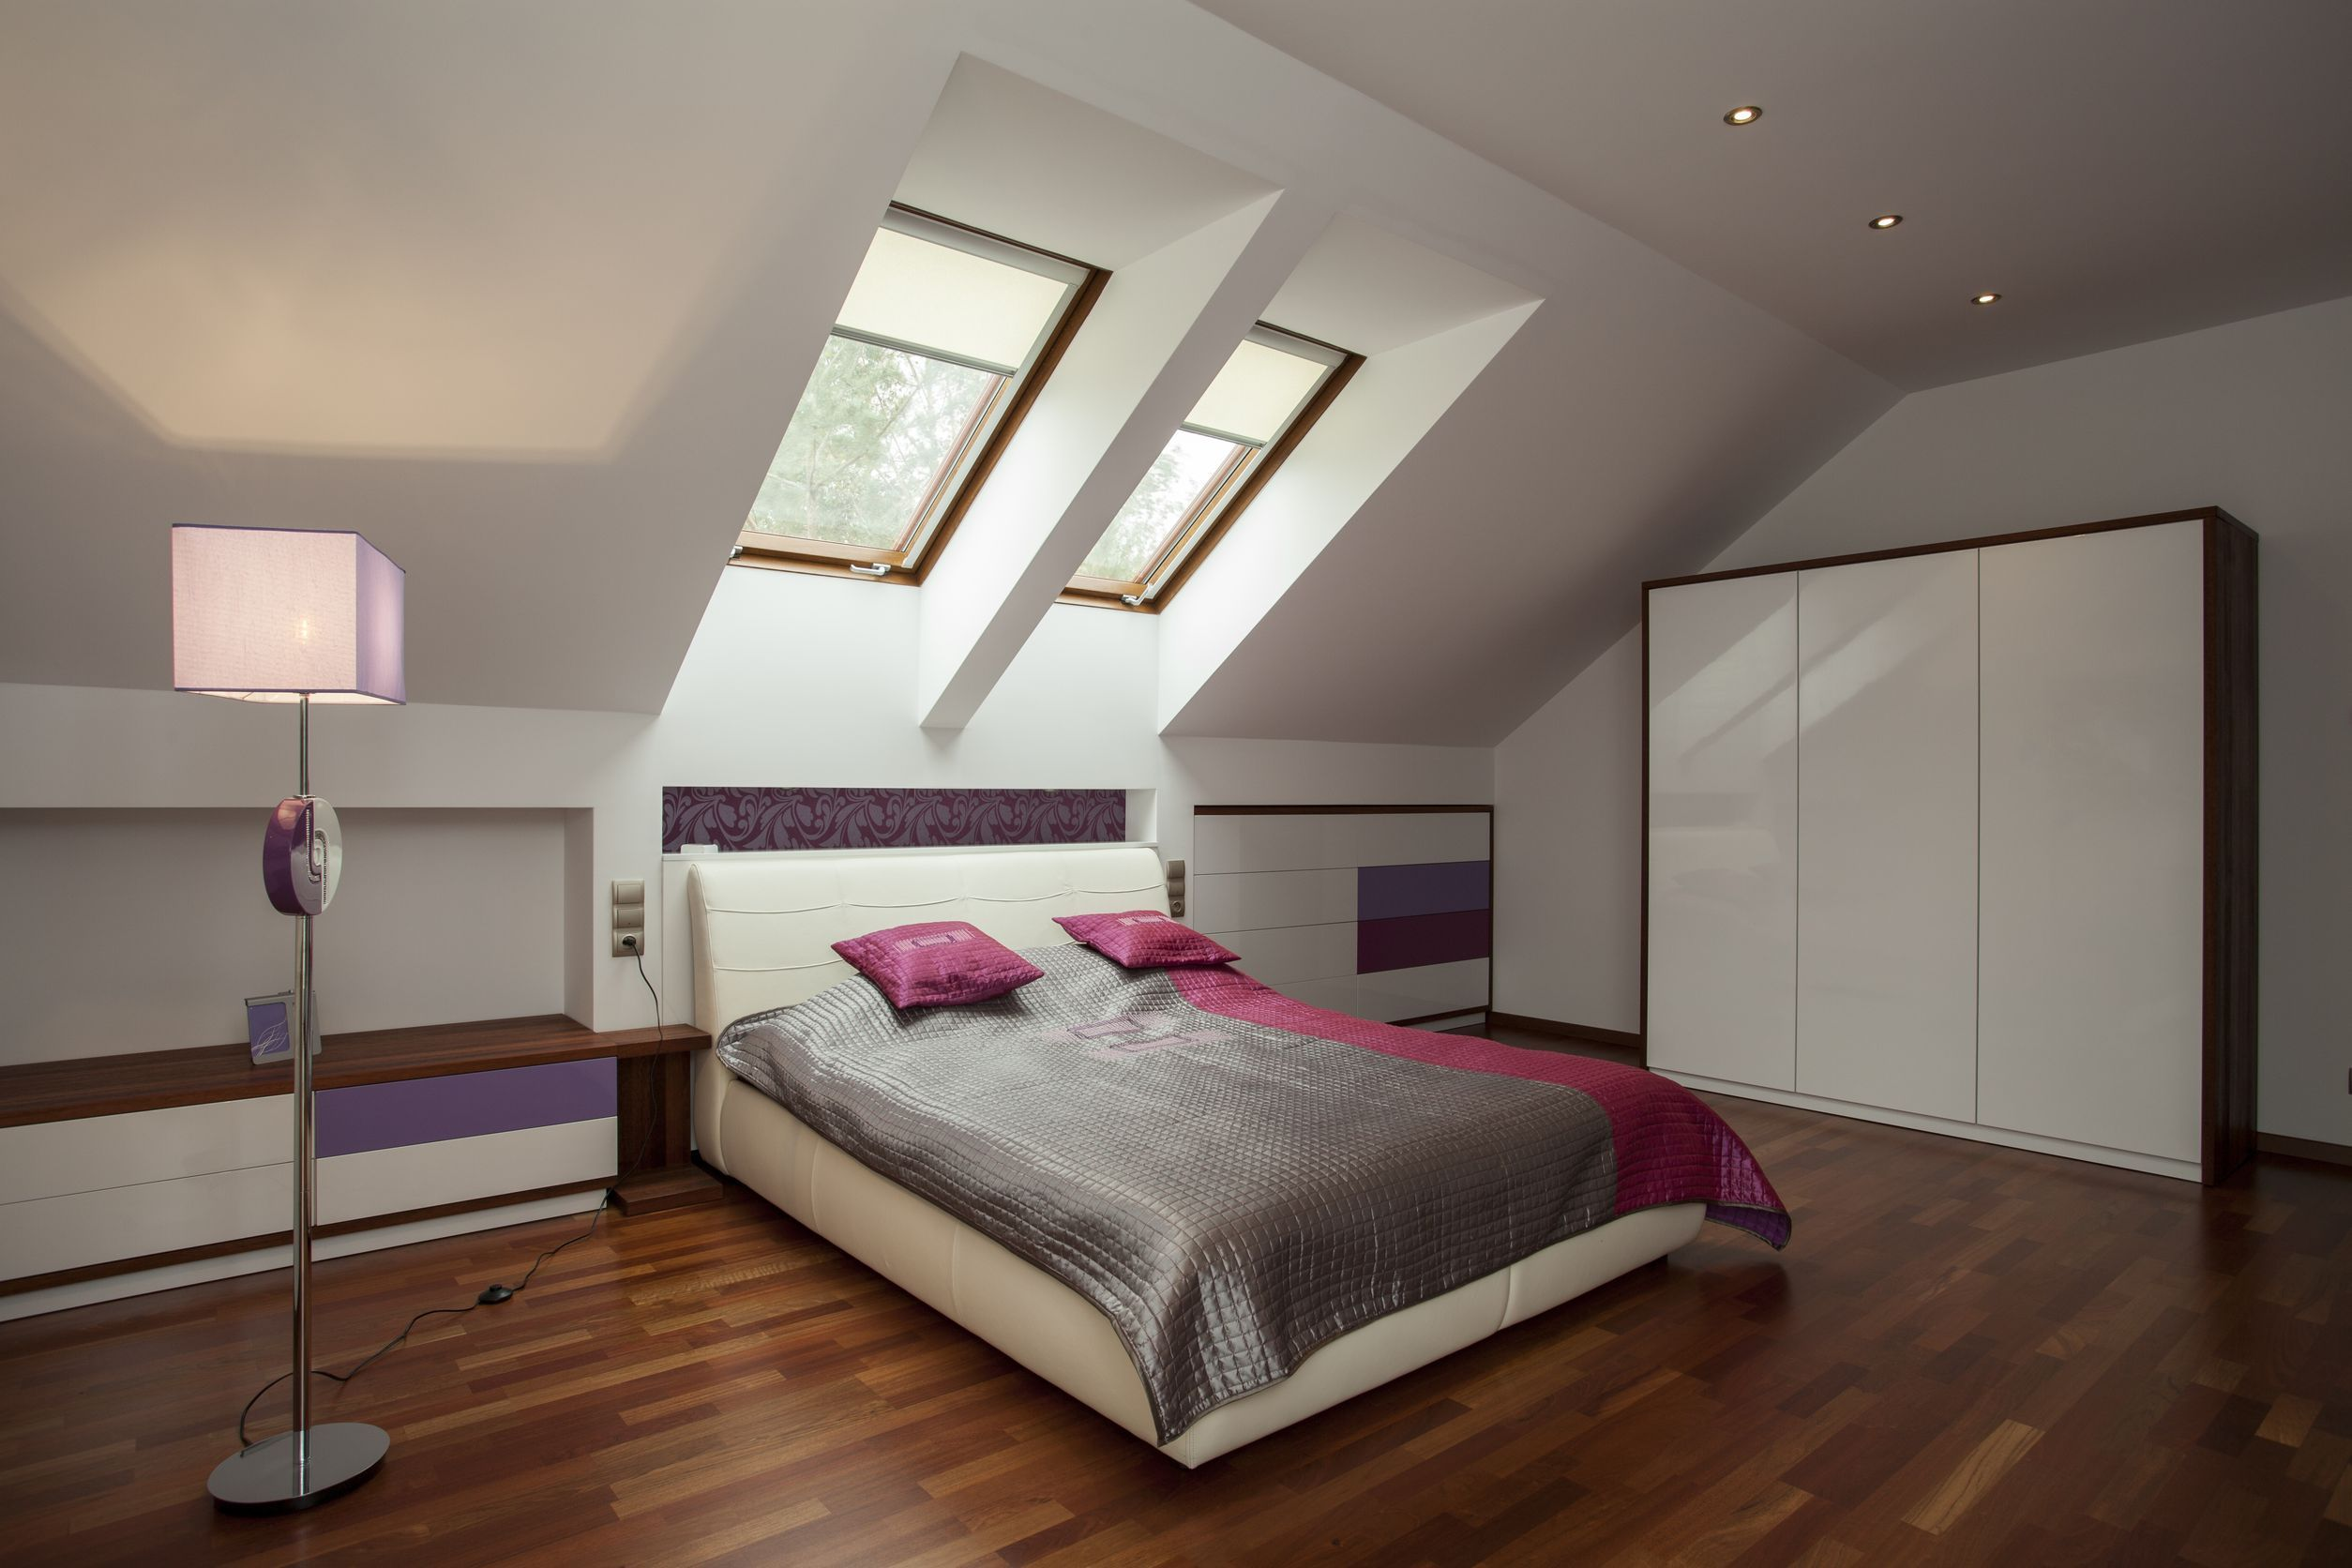 Small Attic Room Ideas attic bedroom design and décor tips | attic bedroom designs, attic